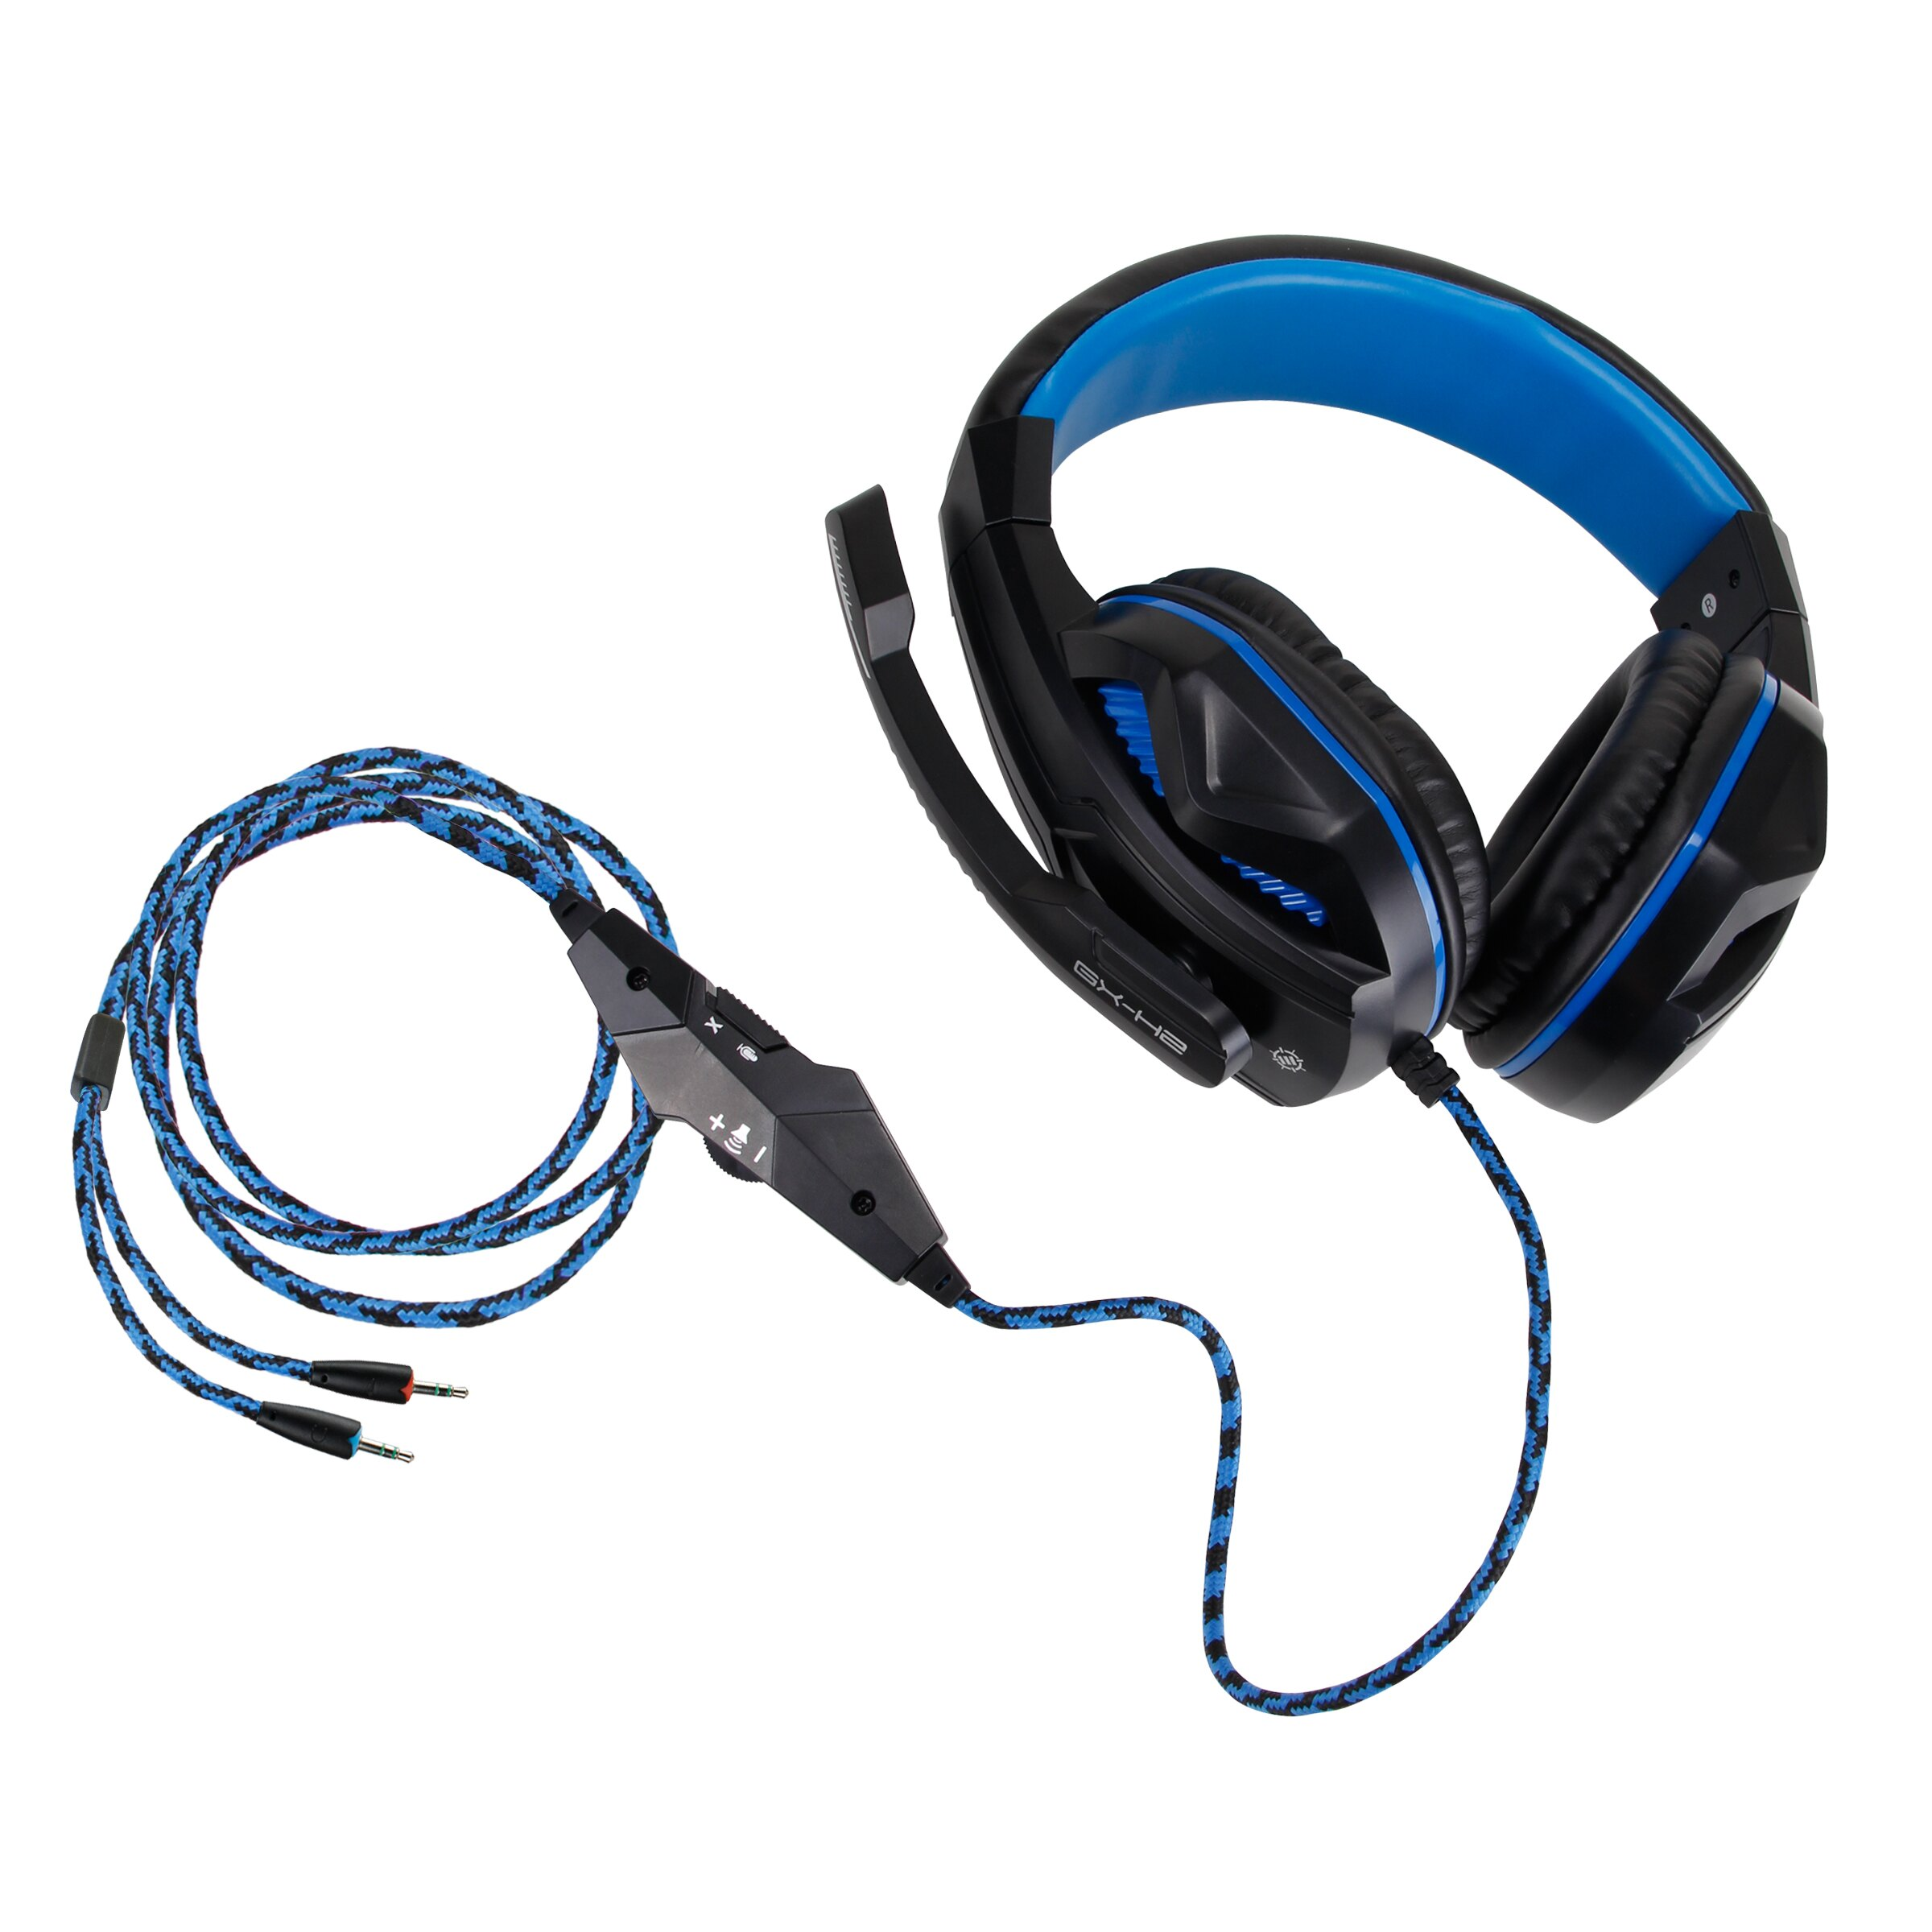 ENHANCE GX-H2 PC Headset with Comfortable Ear Padding and Adjustable Mic Works with Desktops 6